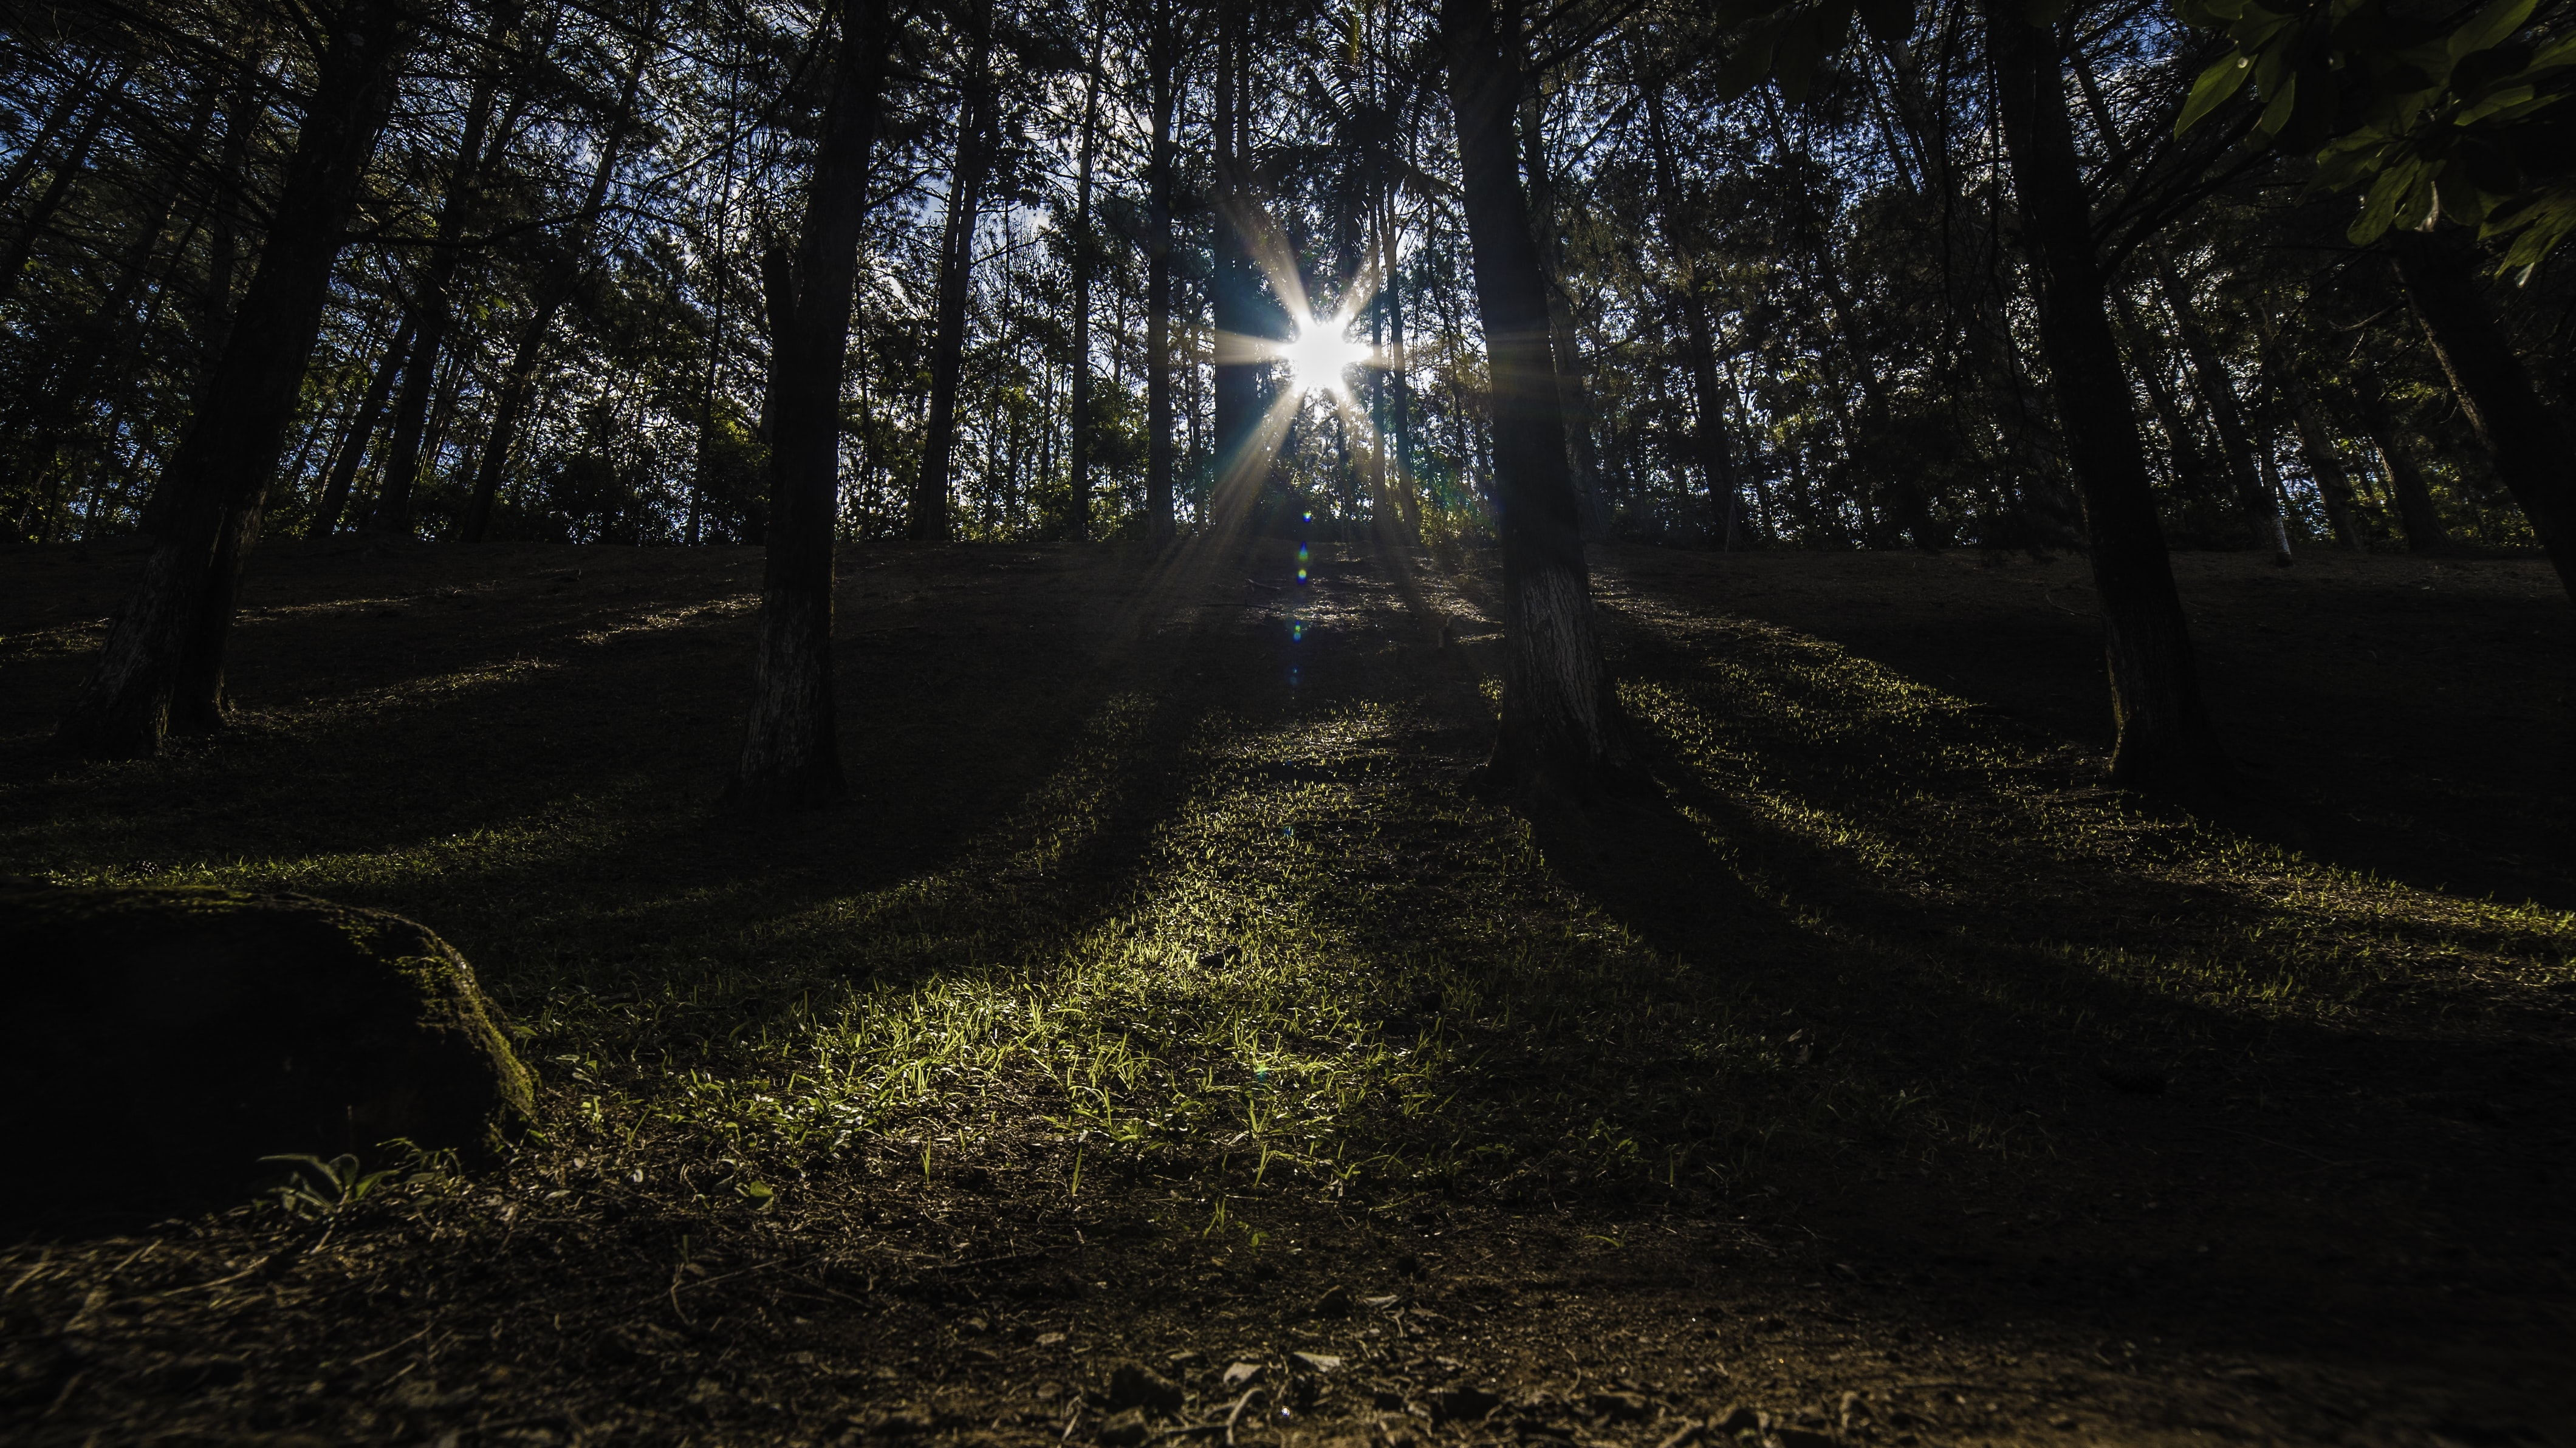 sun rays on forest during daytime